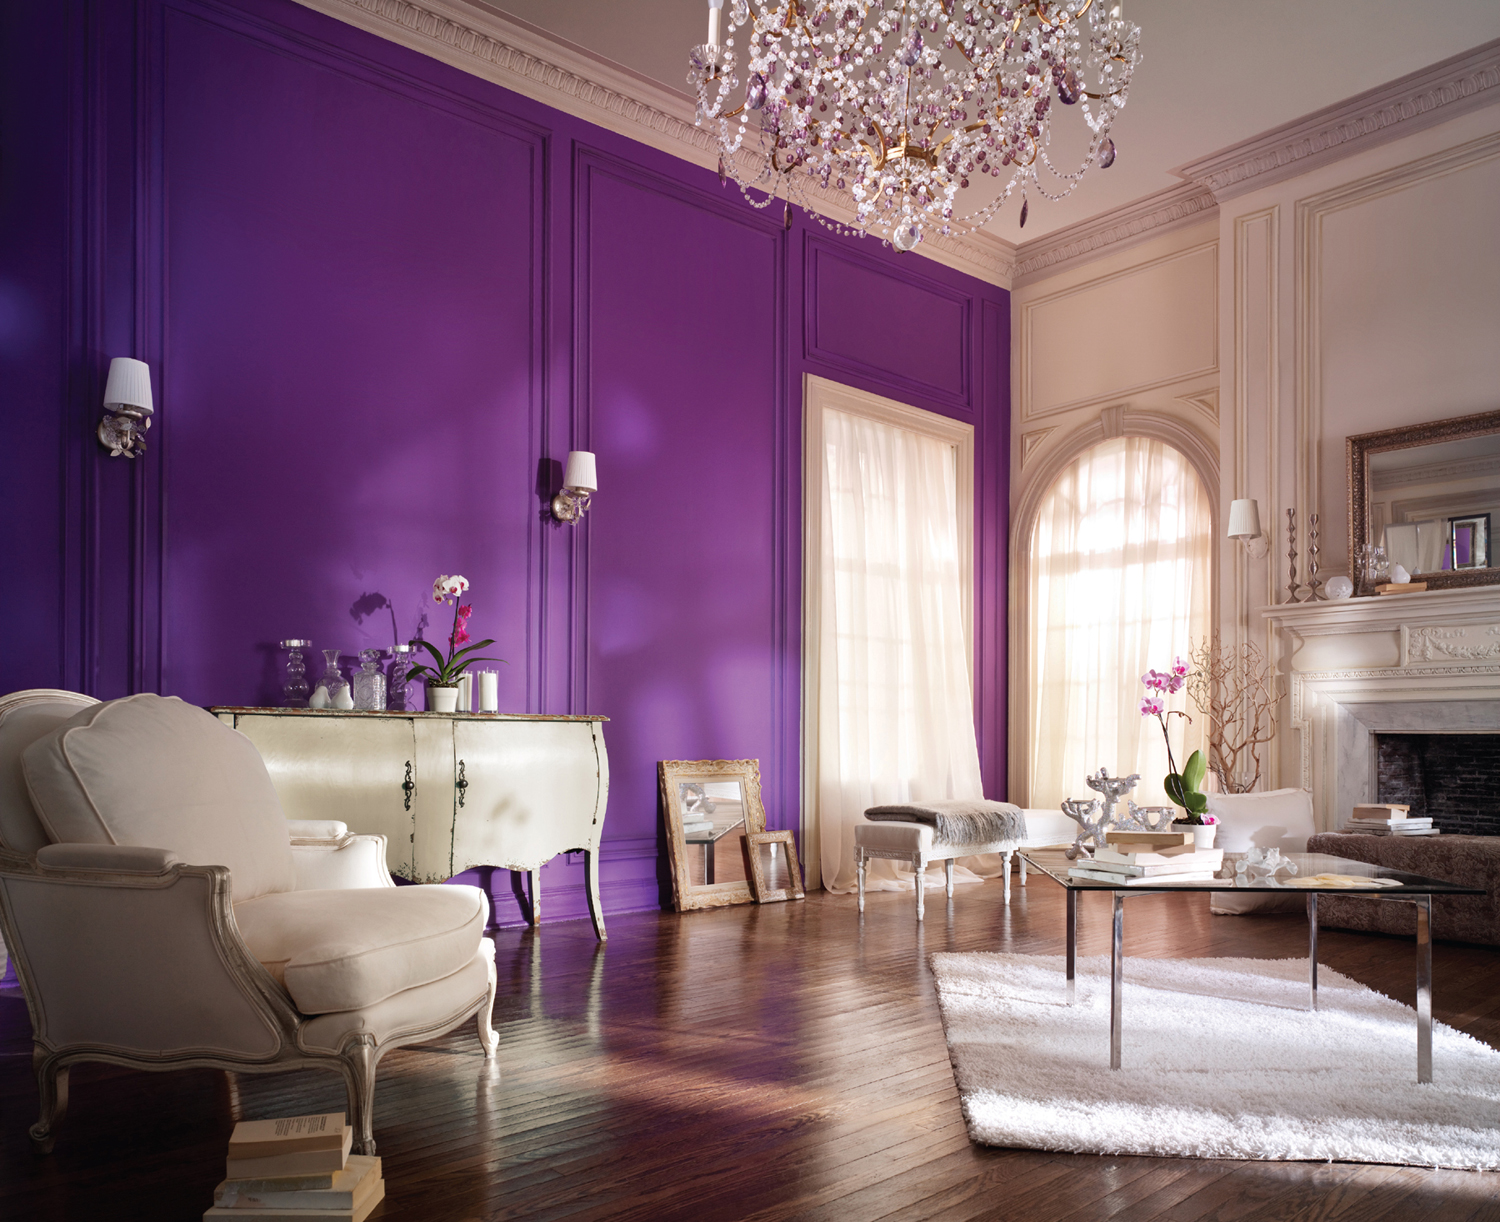 Purple Wall Paint The Variants  Homesfeed. Kitchen Dicer With Multiple Accessories. Modern Kitchen Designs Photos. Wooden Country Kitchen. Kitchen Dresser Modern. Lazy Susan Kitchen Storage. Kitchen Sinks Taps Accessories. Country Hills Public School Kitchener. Country Style Kitchen Tables